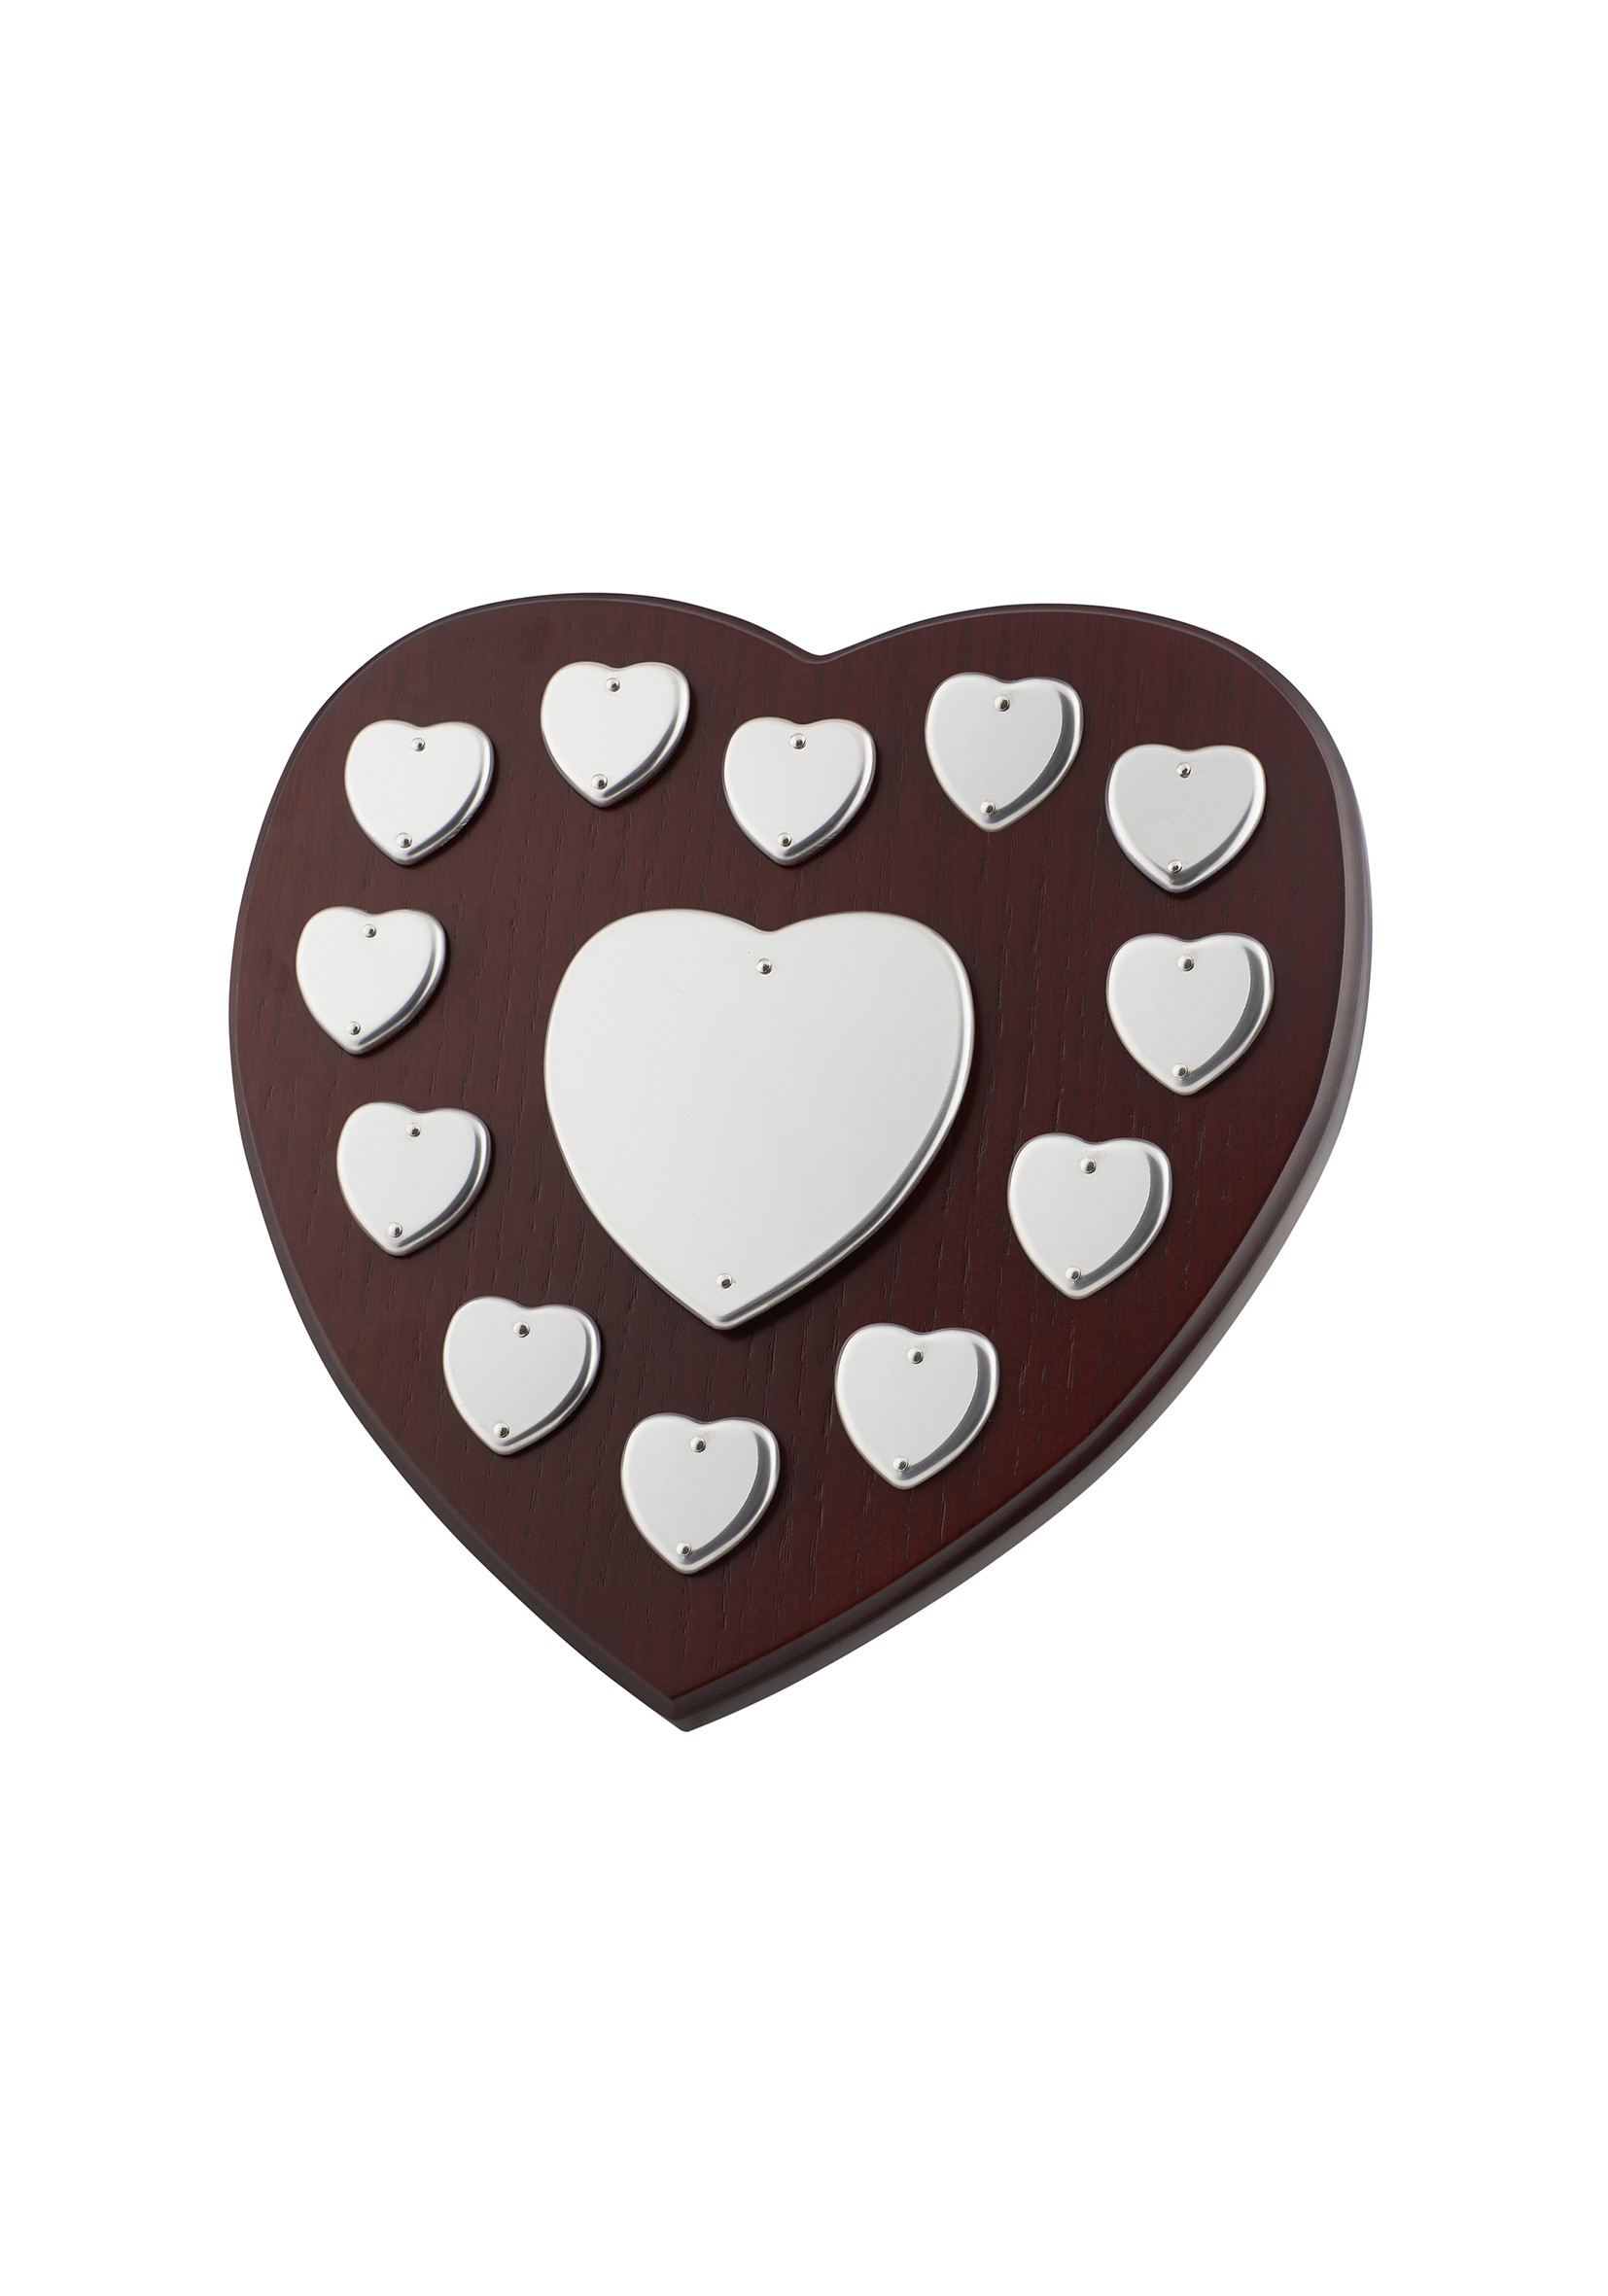 MB Heart Perpetual Shield